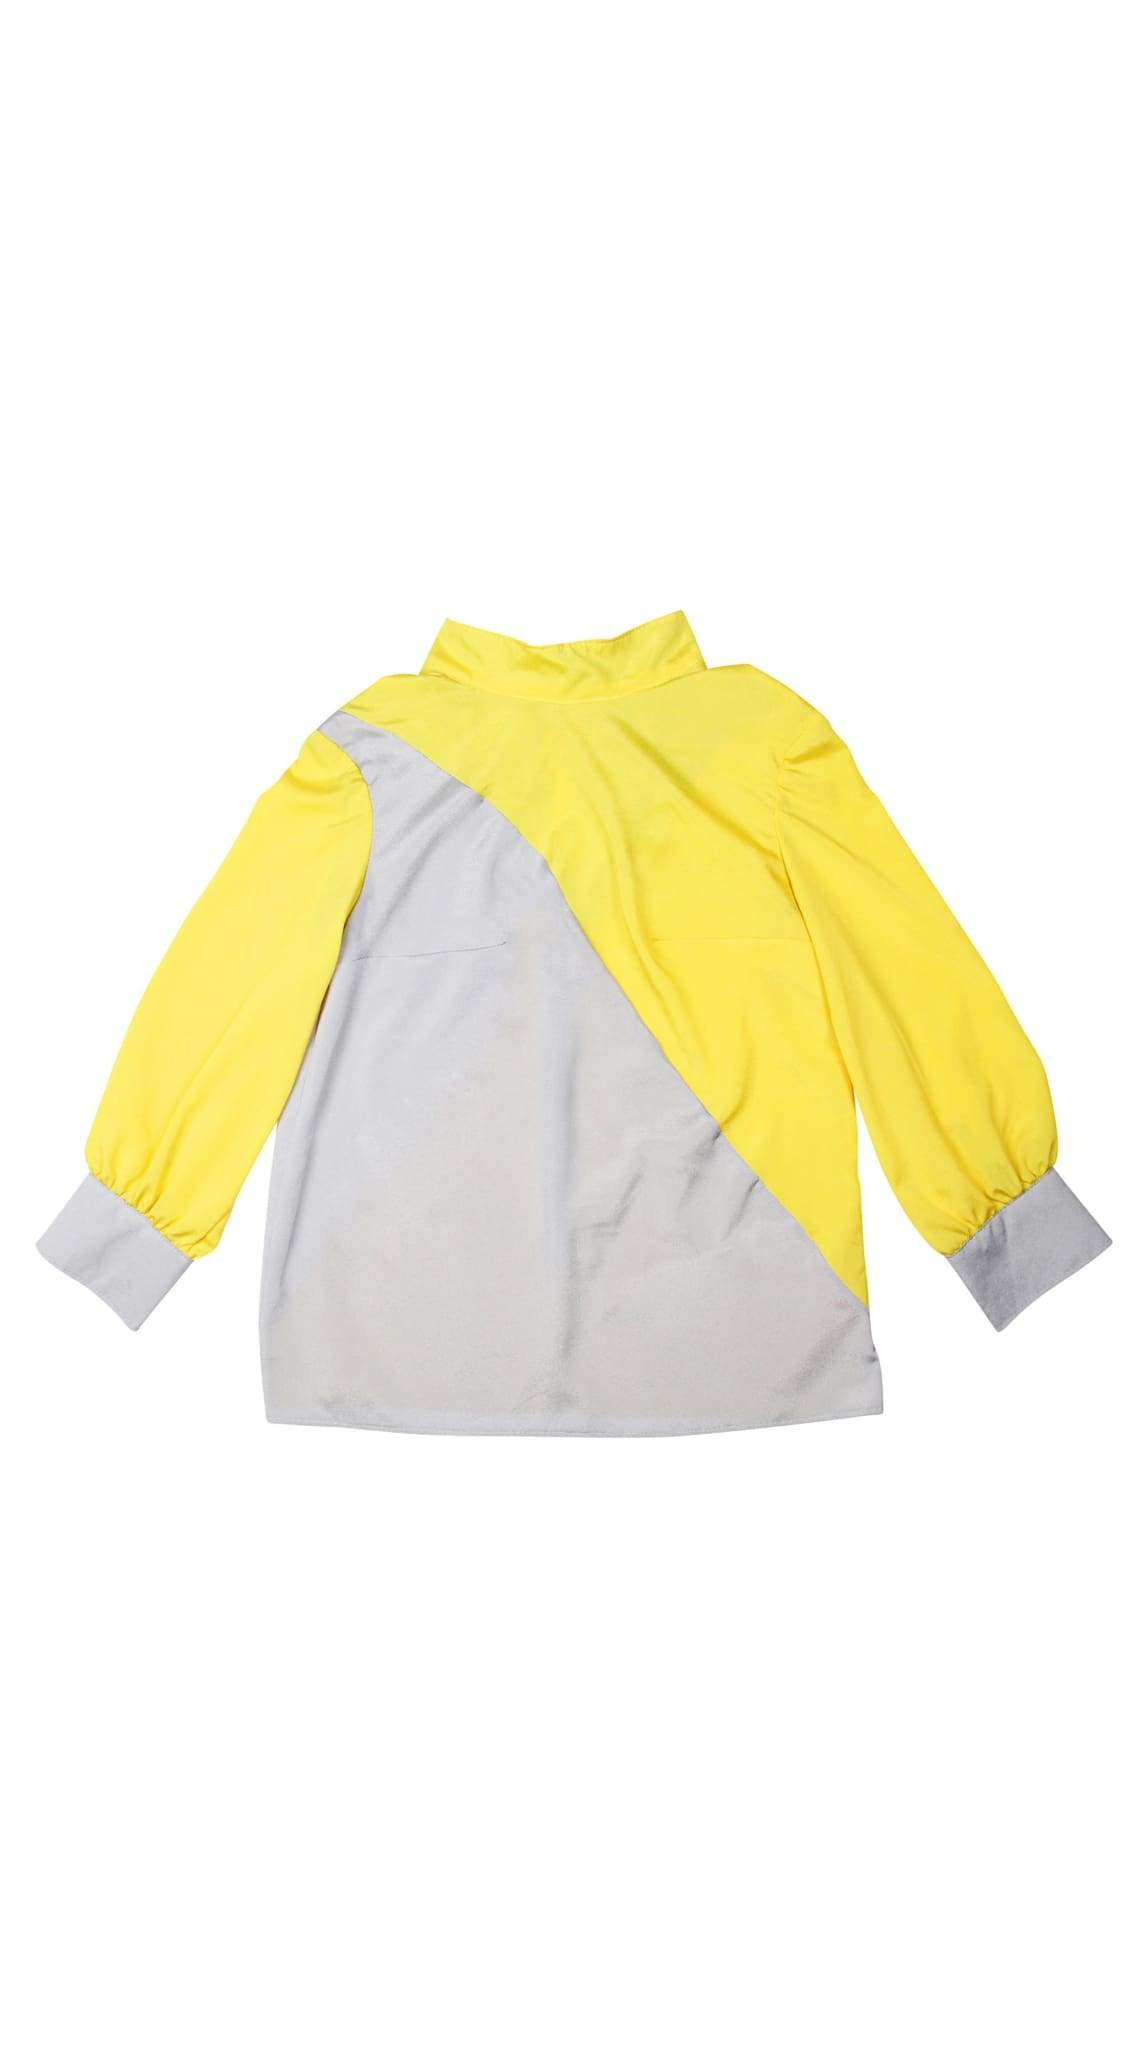 Yellow and Grey Starstruck Tie Blouse by Meghan Hughes | Nineteenth Amendment